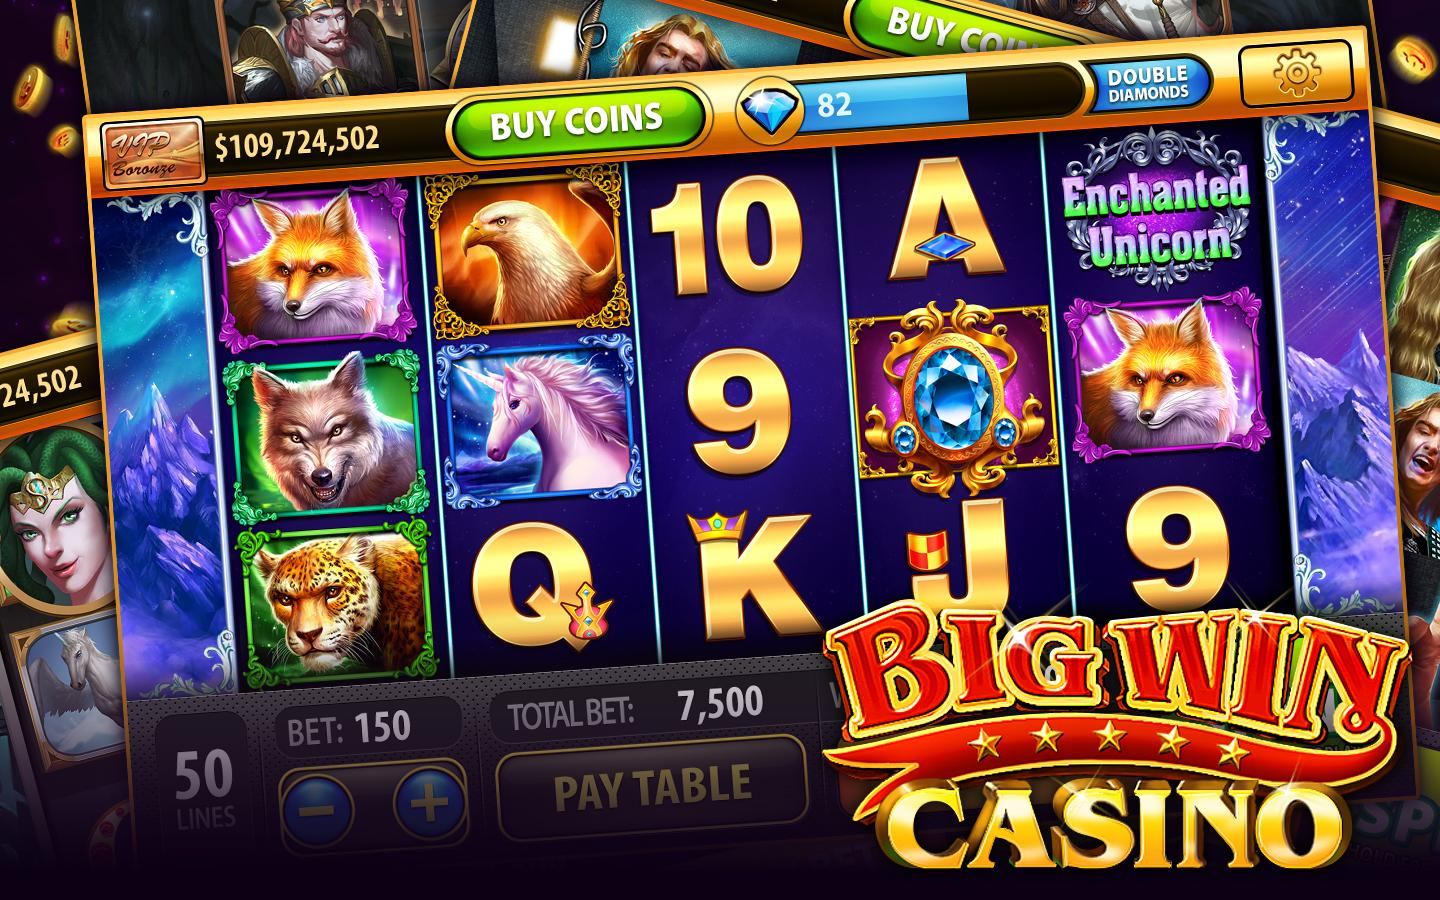 China MegaWild Slots - Play Online Video Slot Games for Free